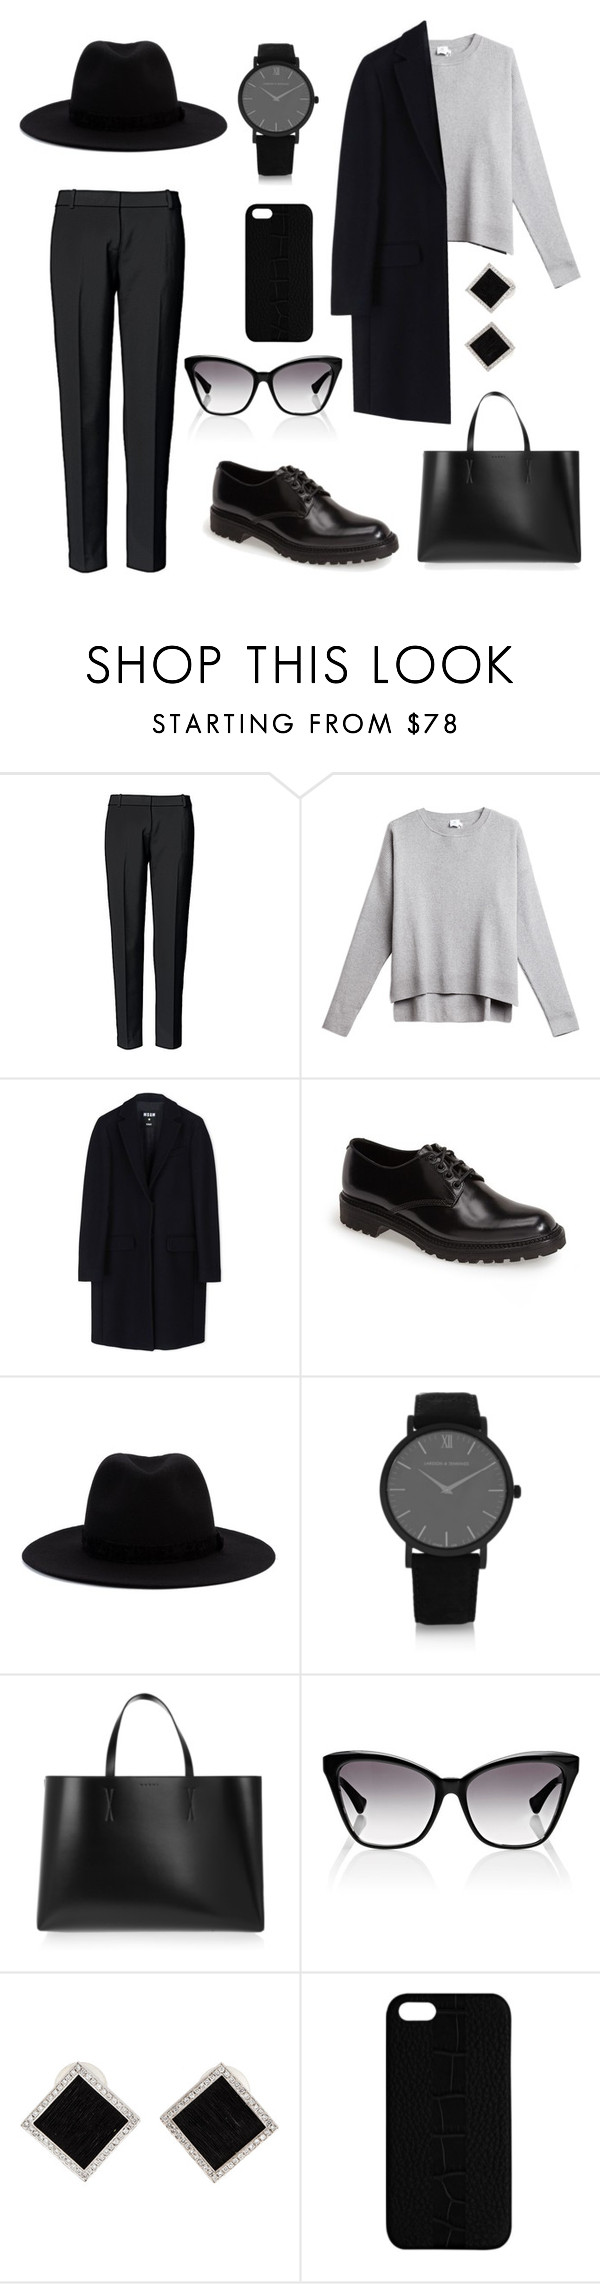 """Untitled #18"" by amatsumo ❤ liked on Polyvore featuring Trouvé, MSGM, Yves Saint Laurent, Nocturne #22 In C Sharp Minor, Op. Posth., Larsson & Jennings, Marni, Dita, Yvel and Maison Takuya"